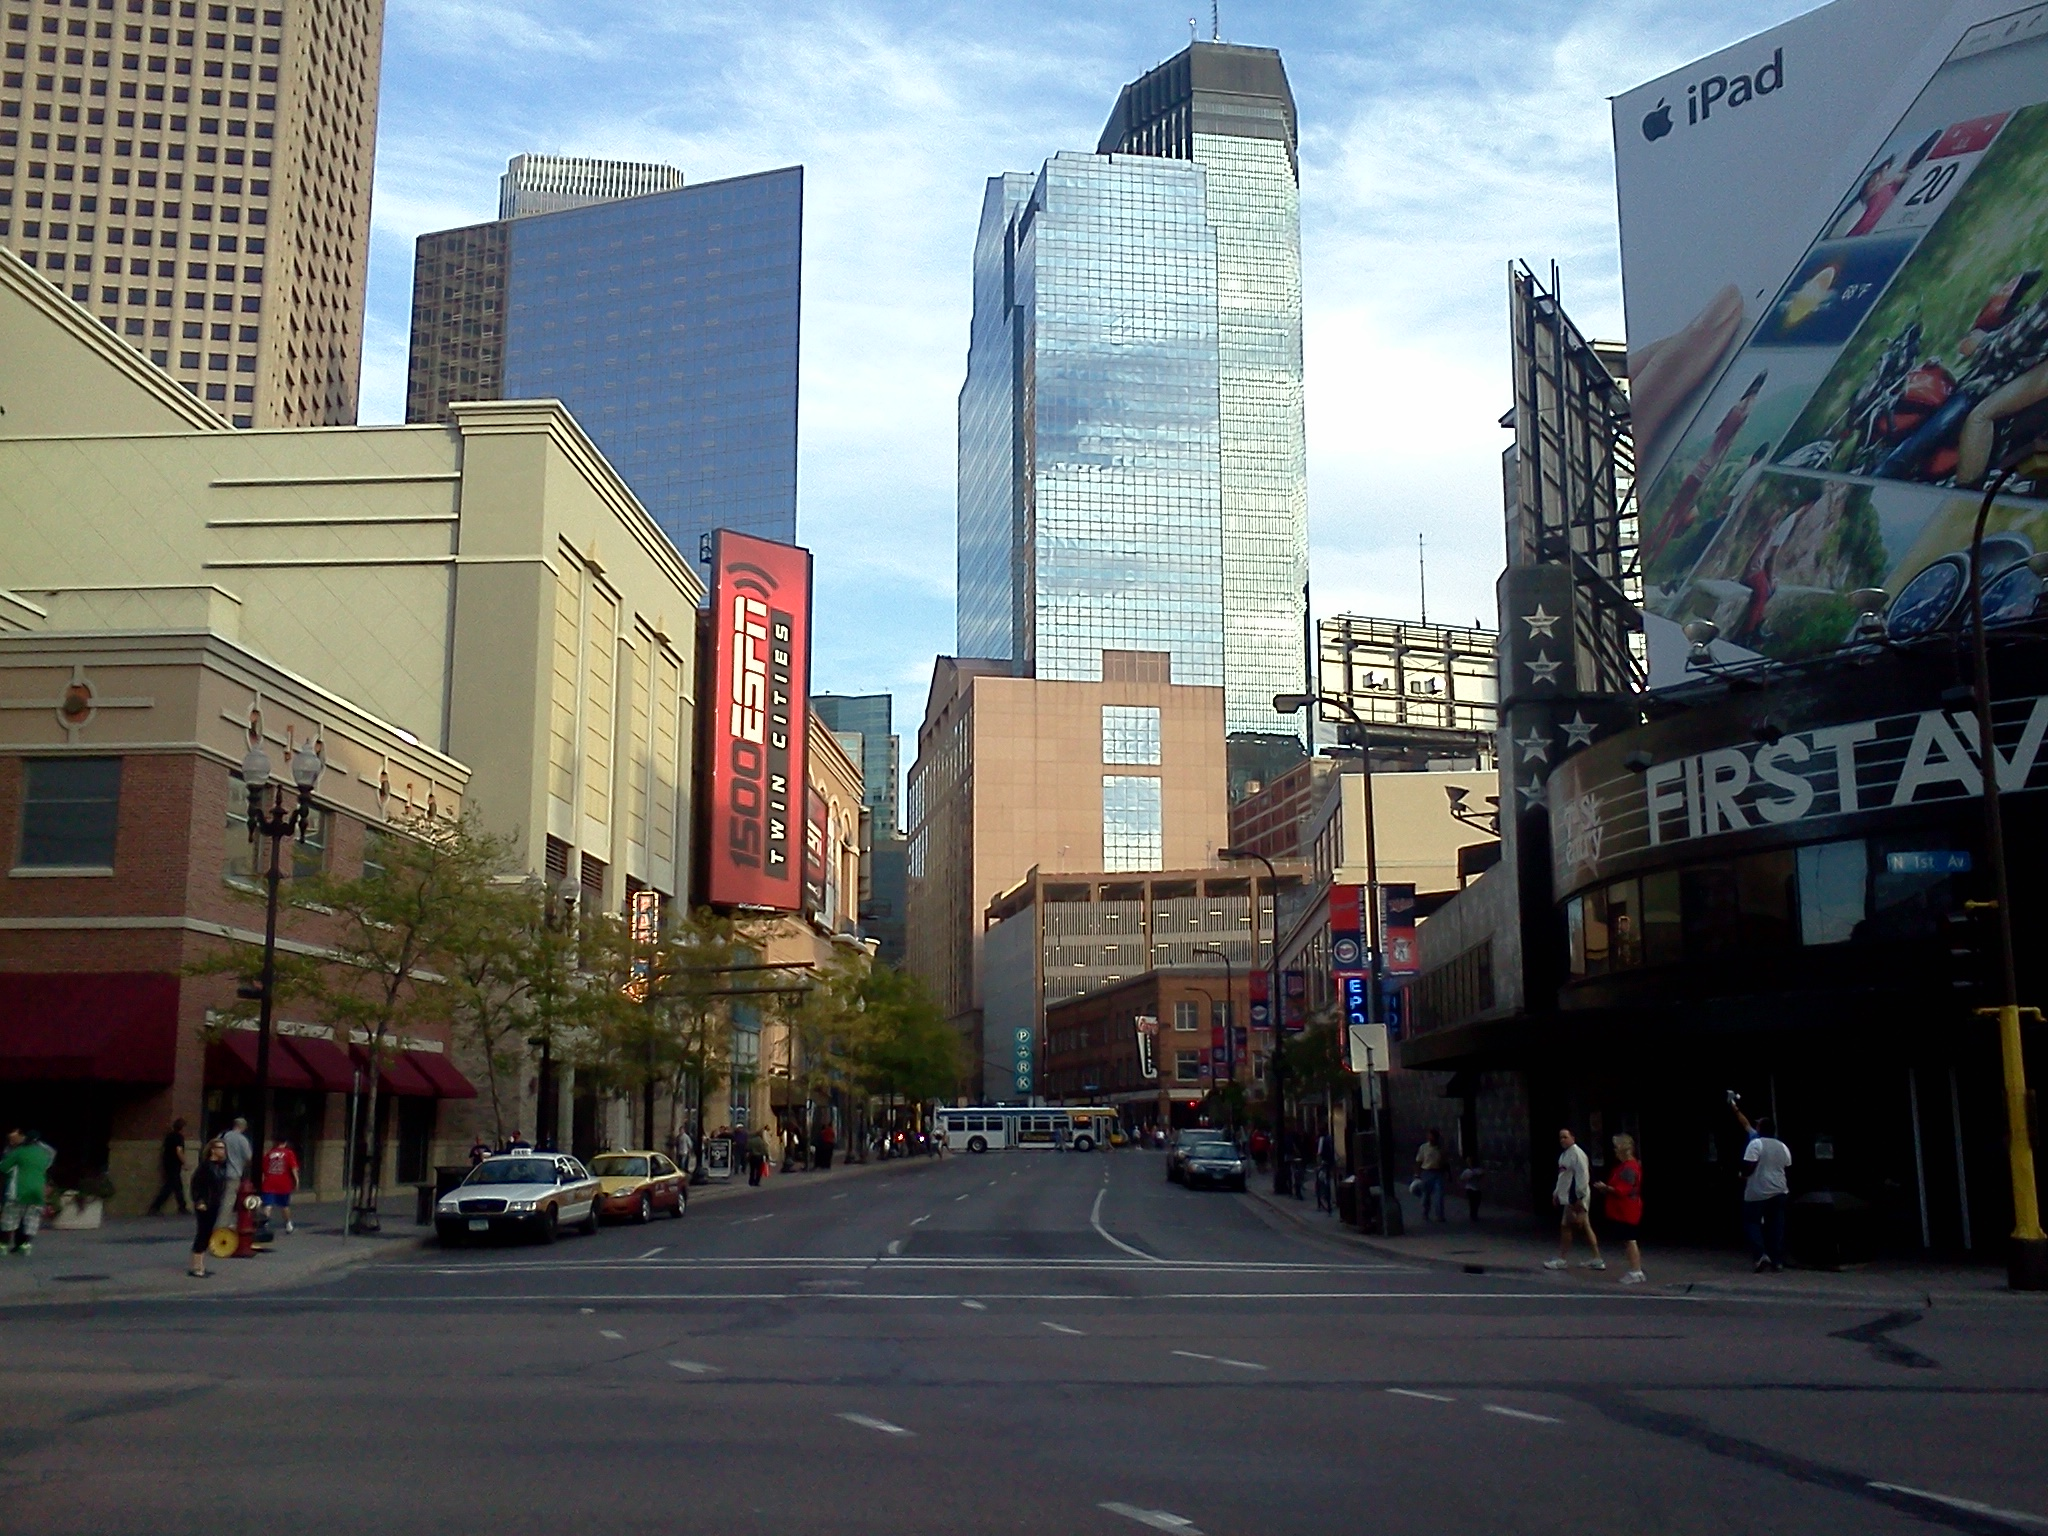 nicollet black singles Nicollet mall in downtown minneapolis is major shopping, arts, and entertainment district check out these suggested restaurants and attractions.